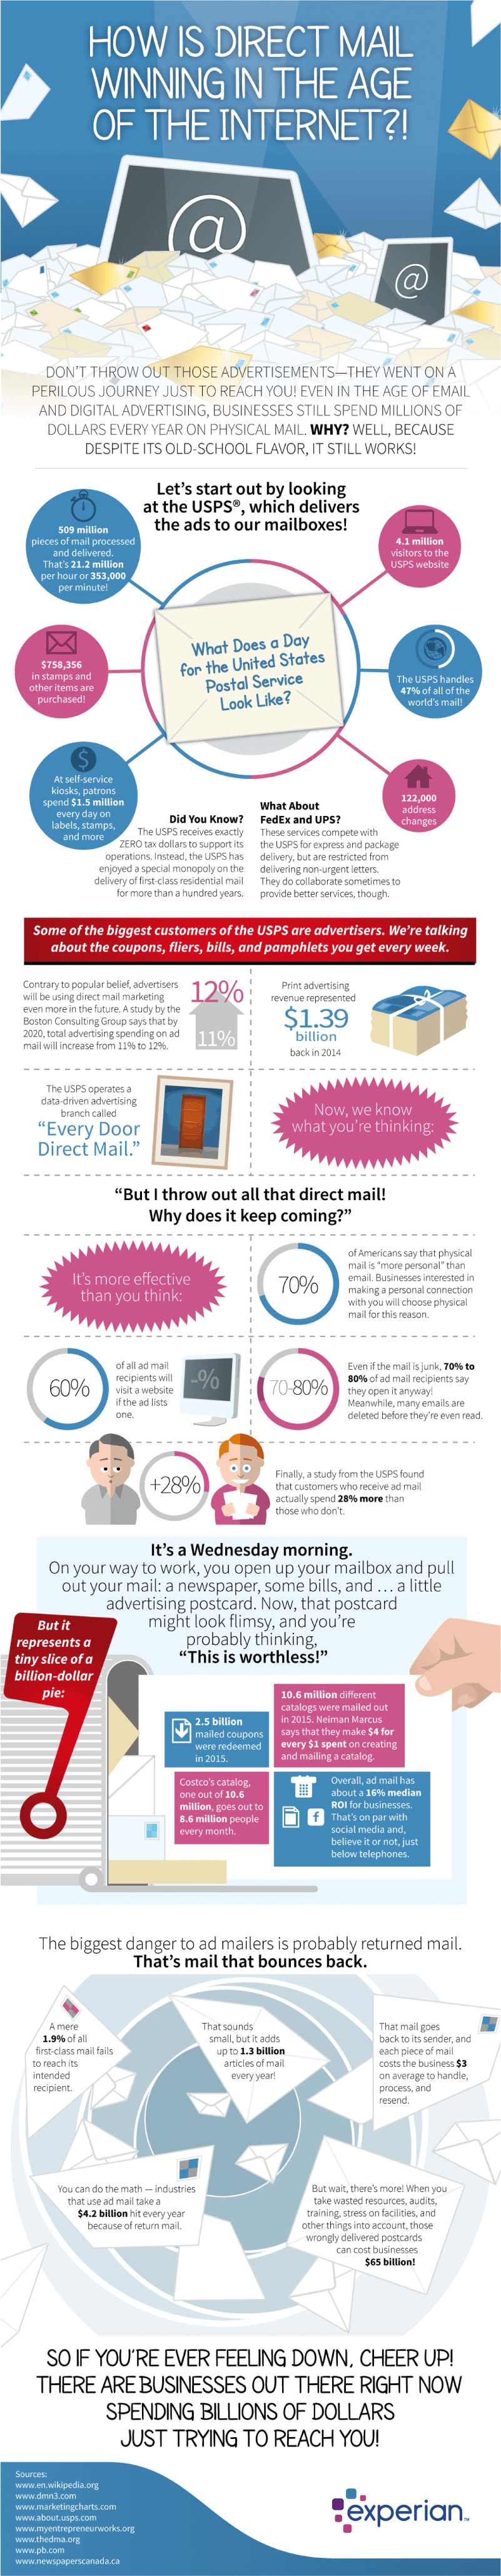 How direct mail is winning in the age of the internet